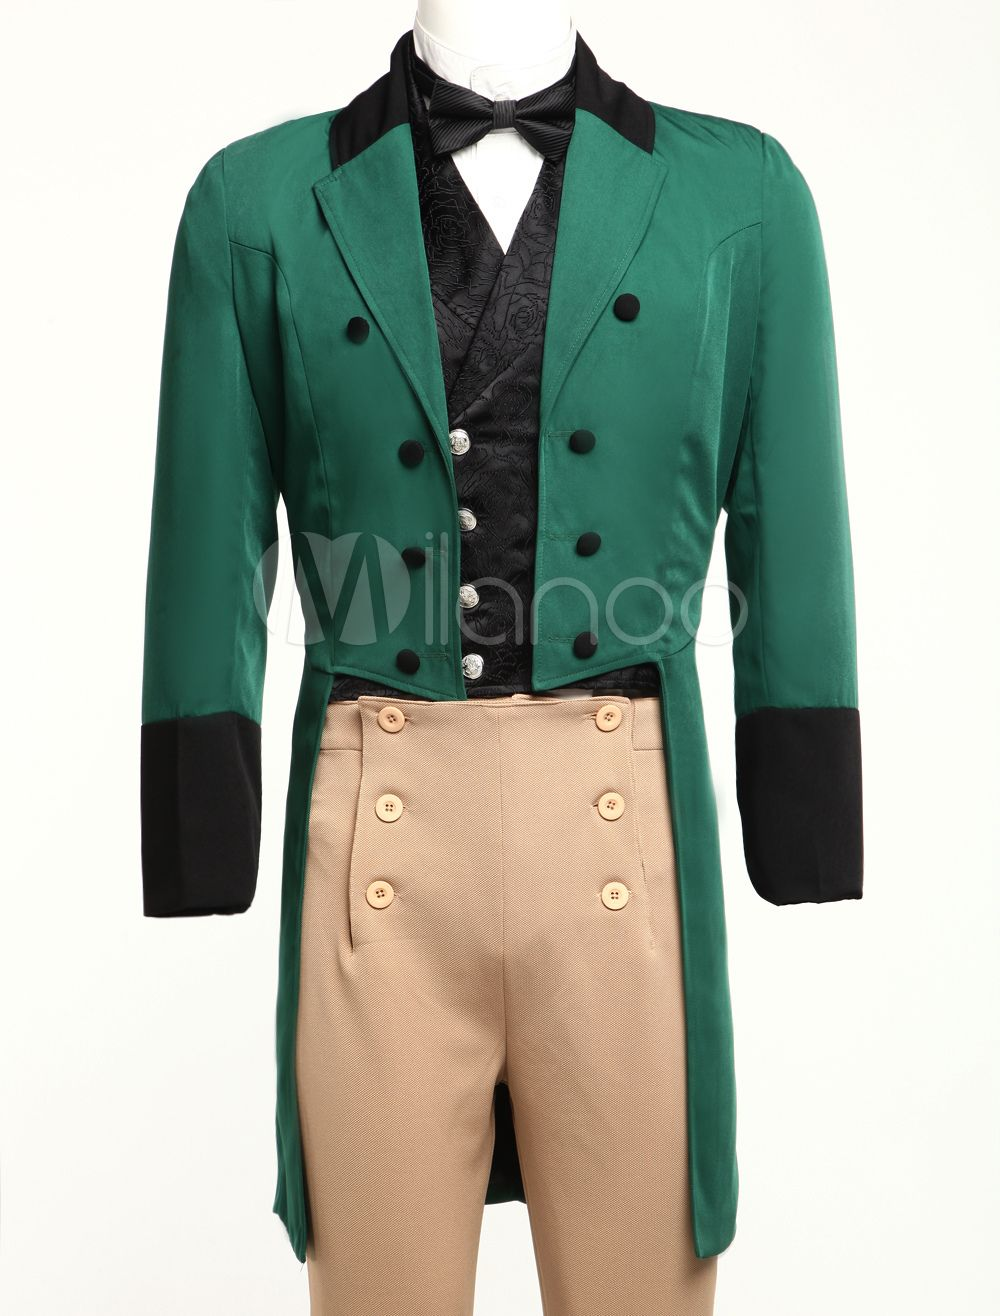 Victorian Men's Clothing 1840 to 1900 Fashion Costumes